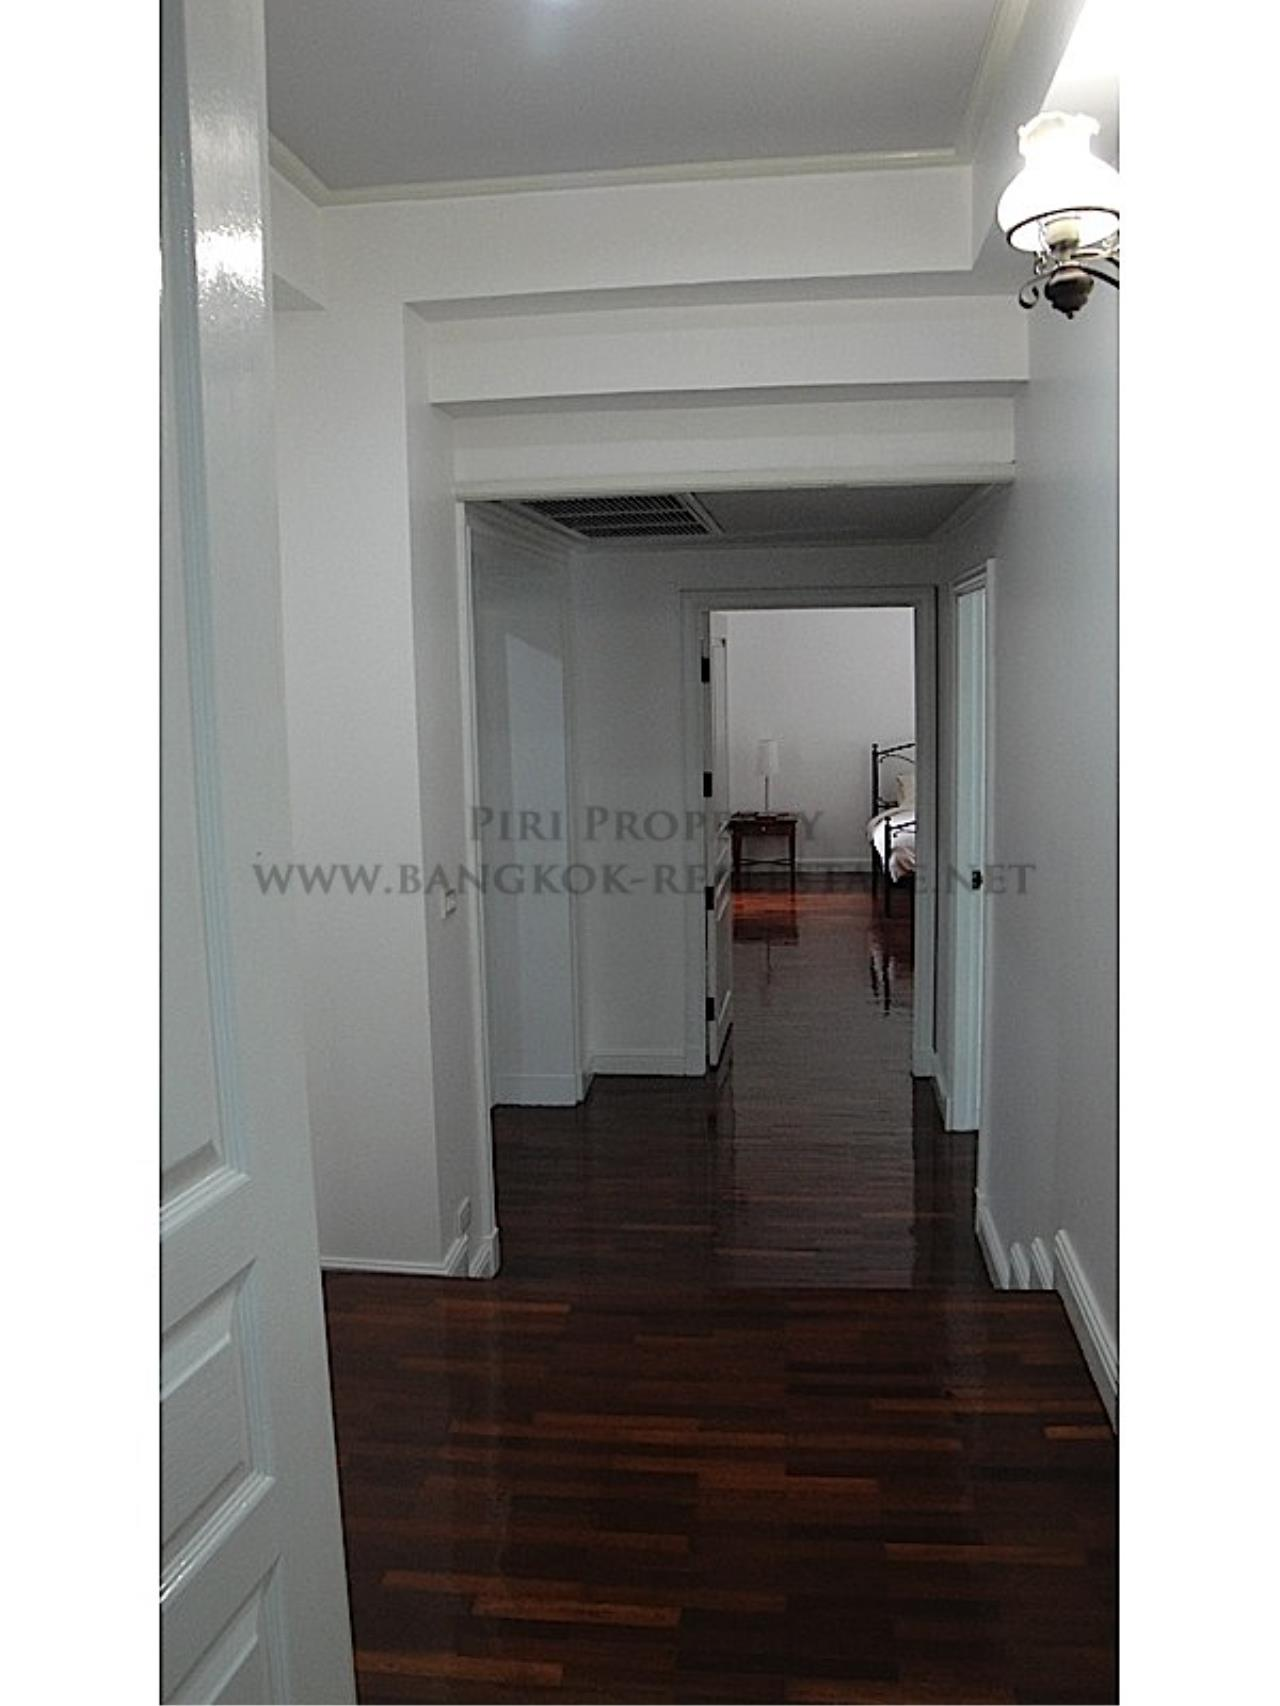 Piri Property Agency's Huge and very exclusively furnished 3 Bedroom Condo 5